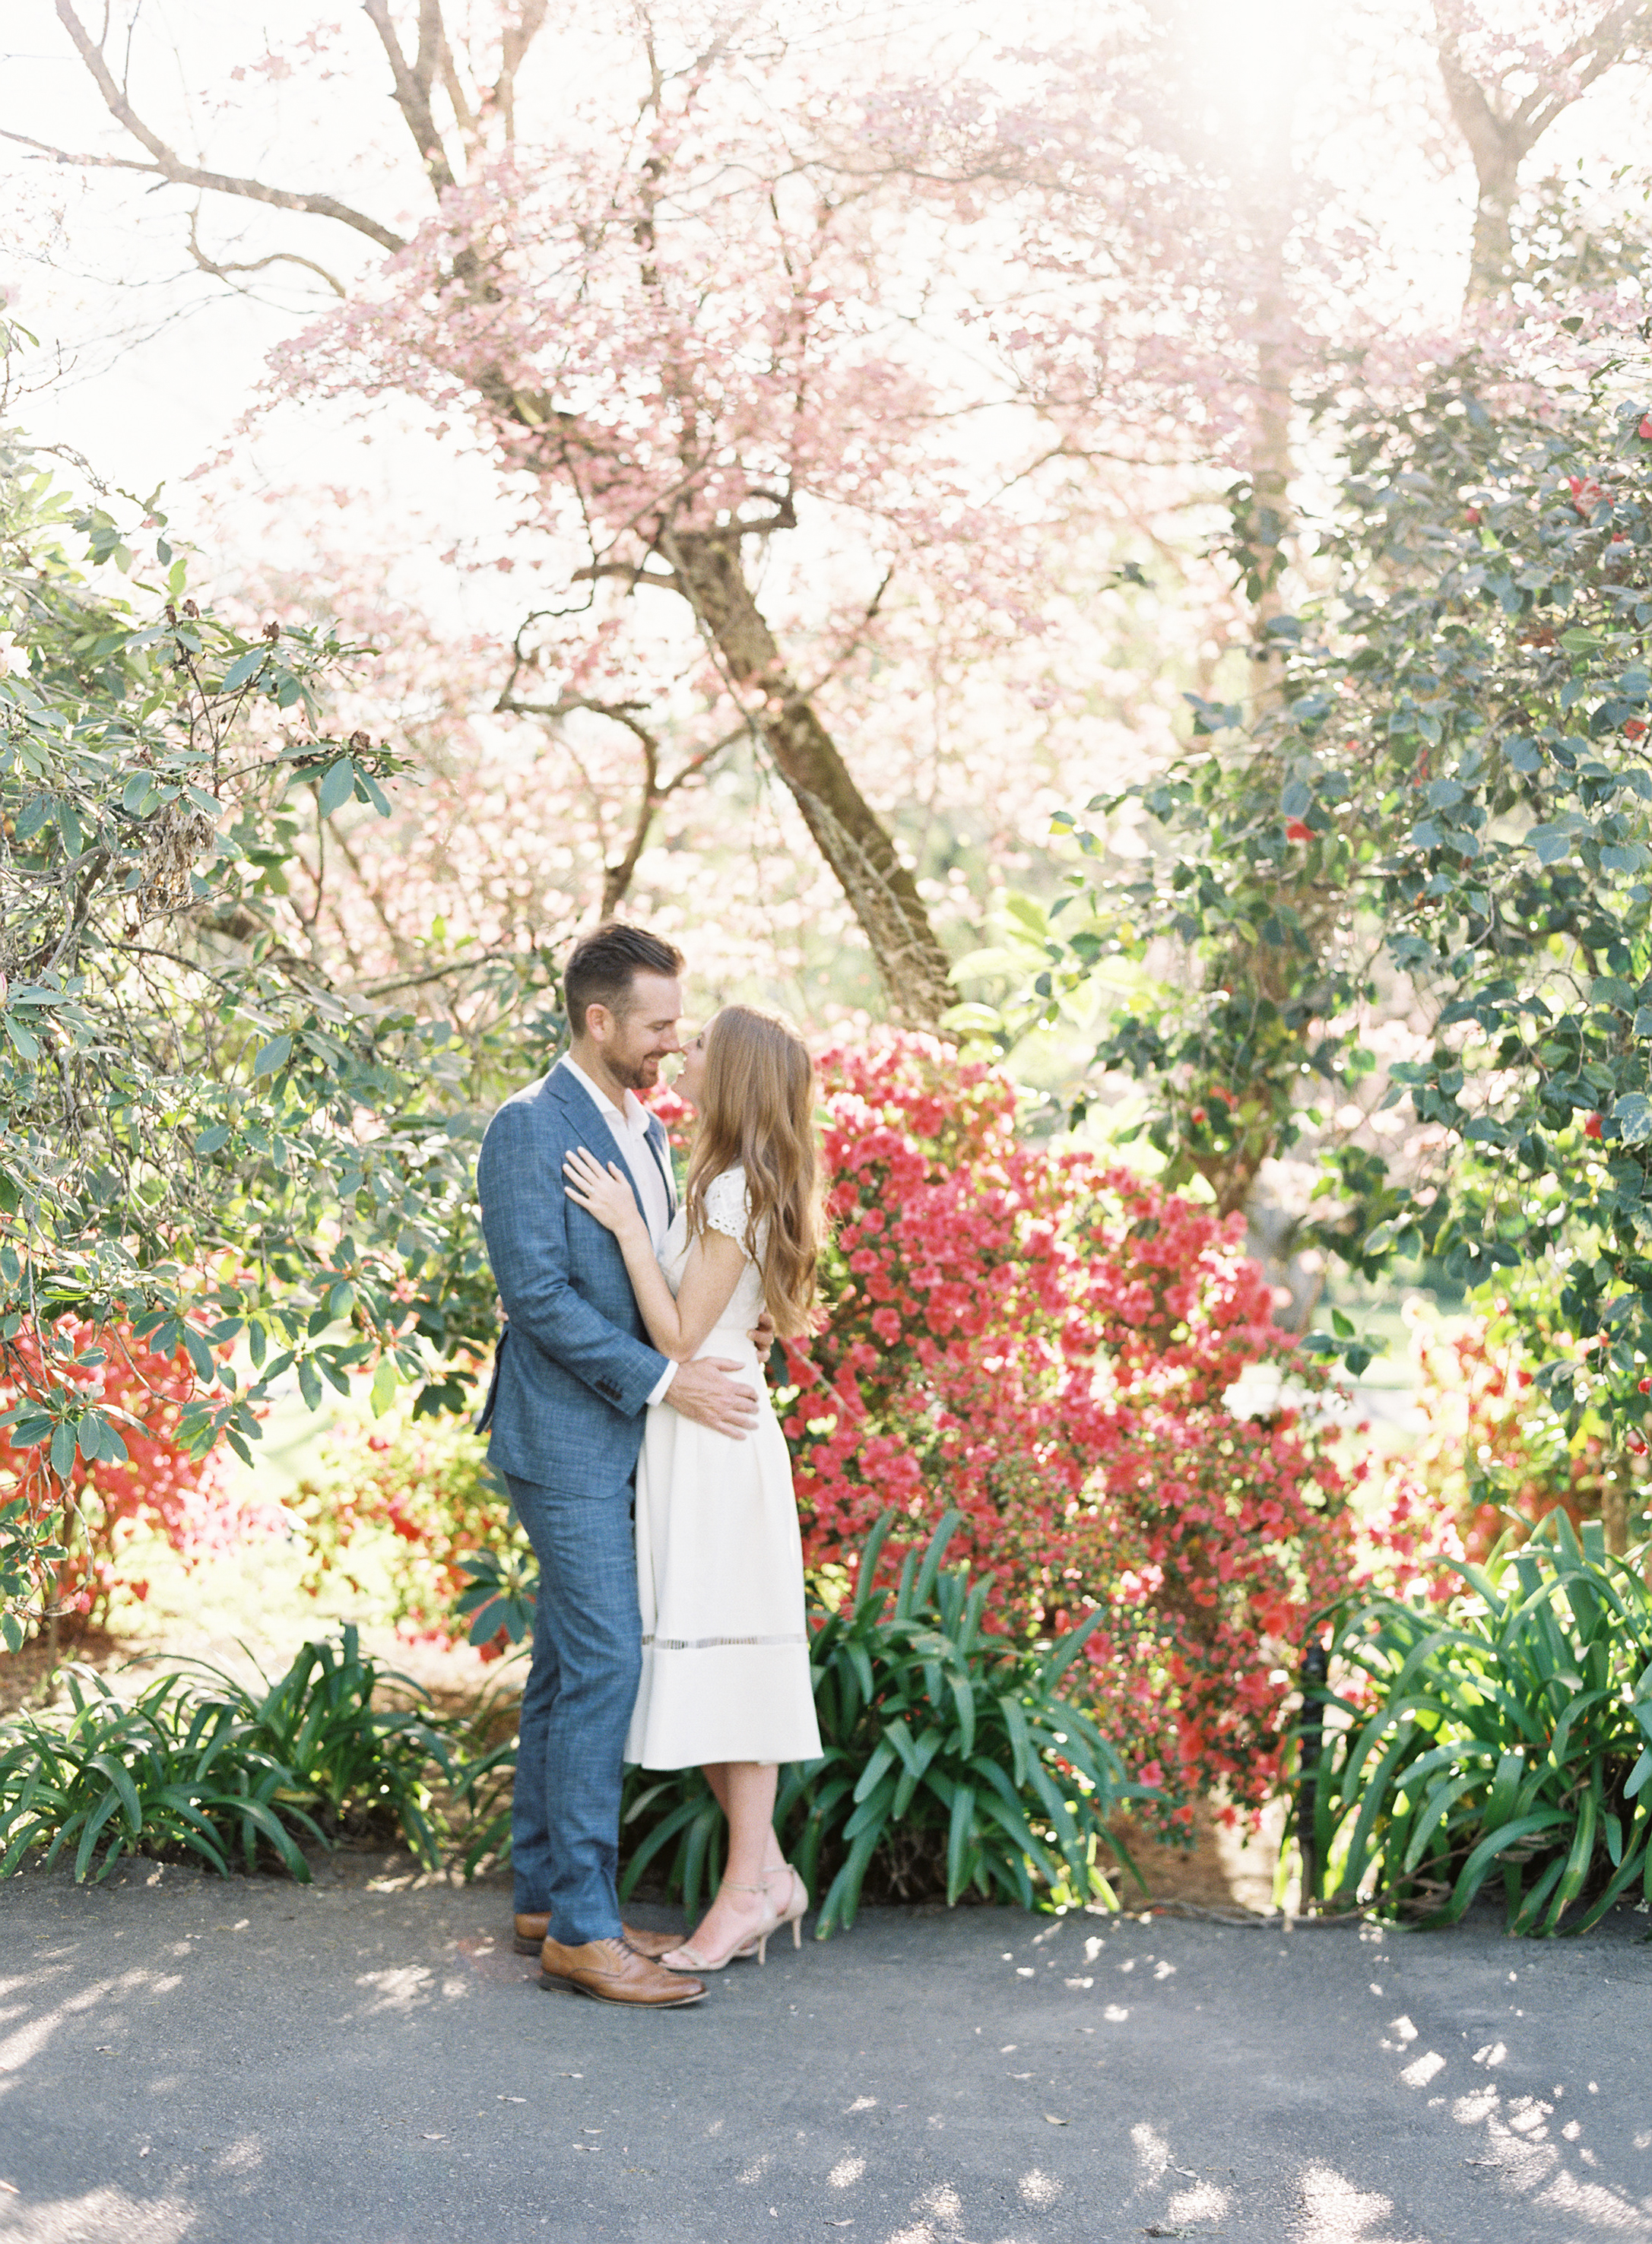 Meghan Mehan Photography - Napa Engagement Session 017.jpg